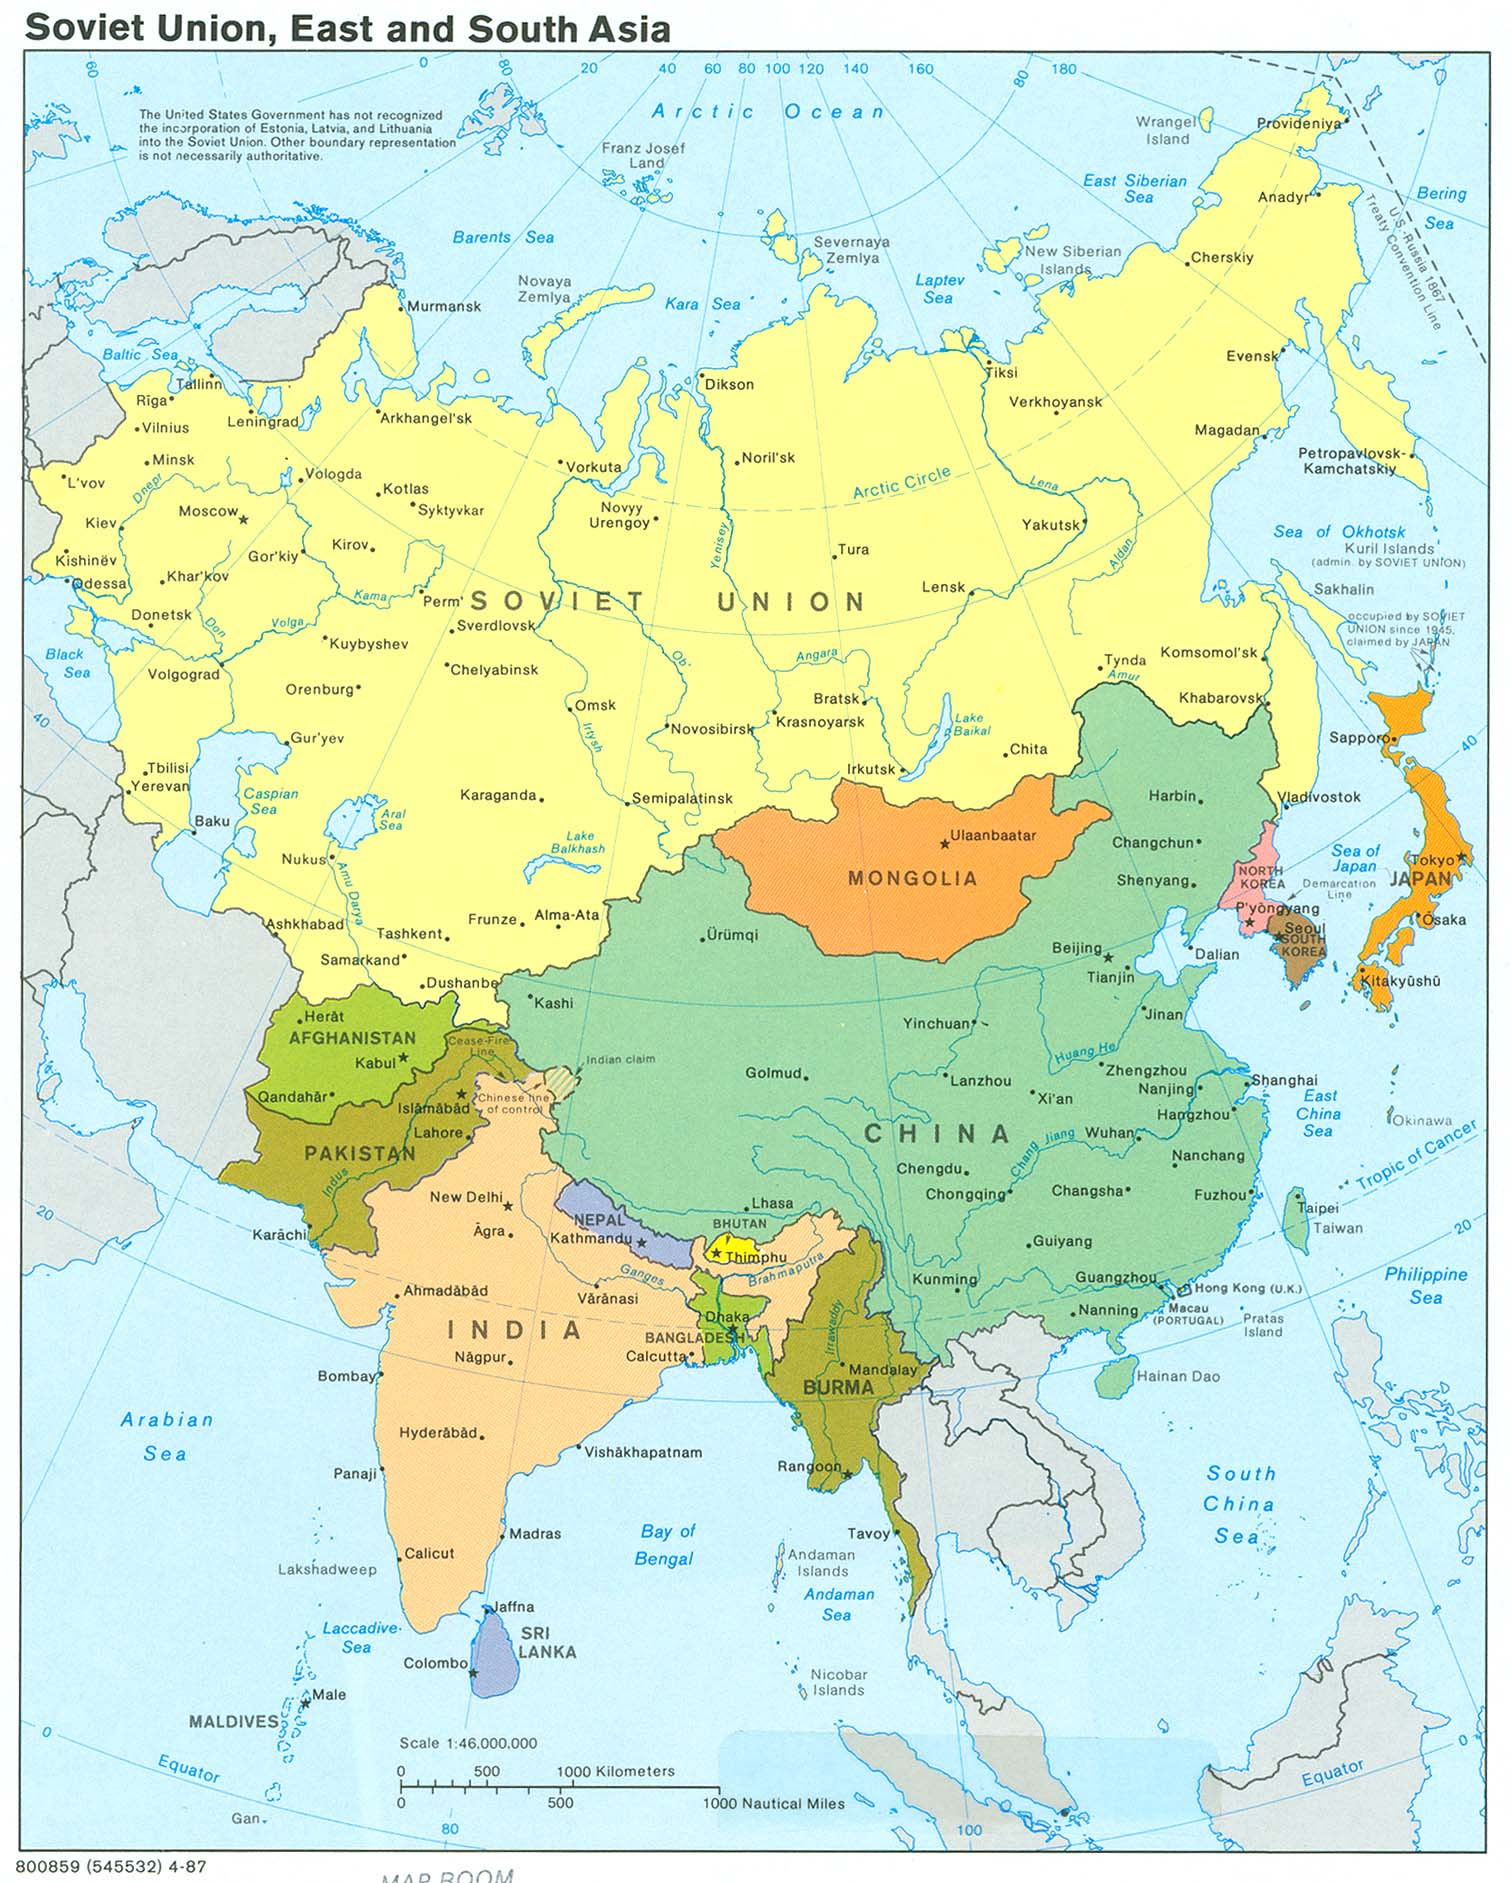 soviet union east and south asia